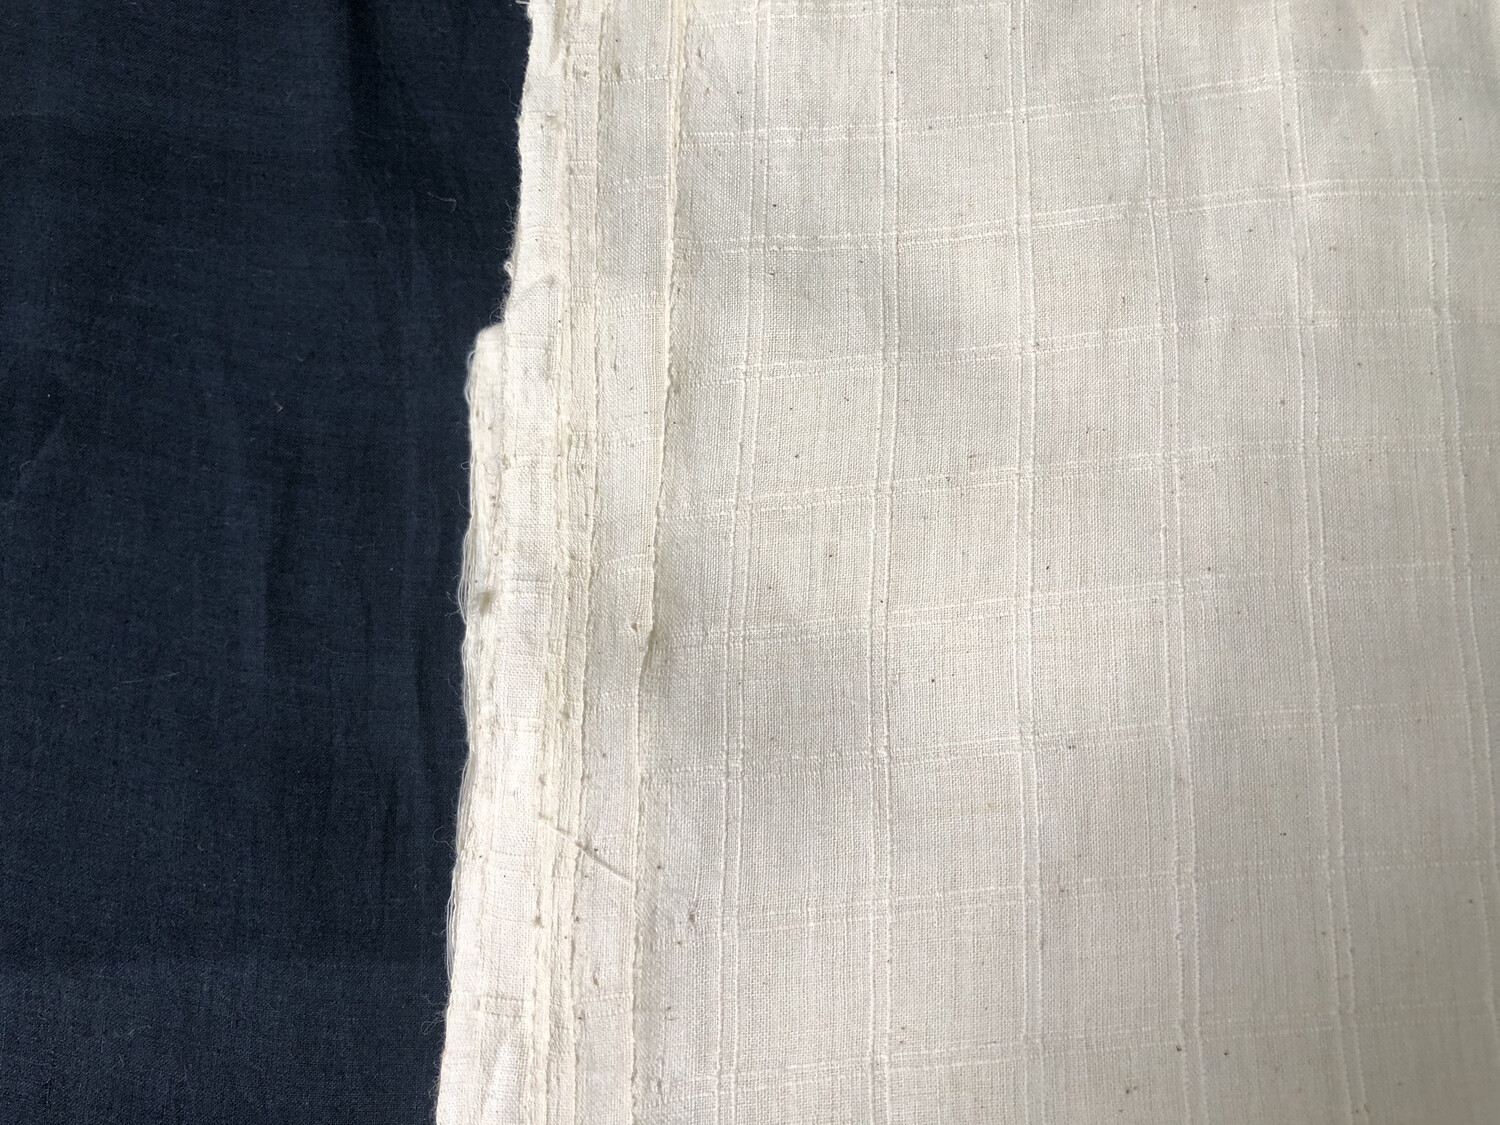 Hand Spun Hand Woven 200 Count Muslin Cotton Design  Fabric